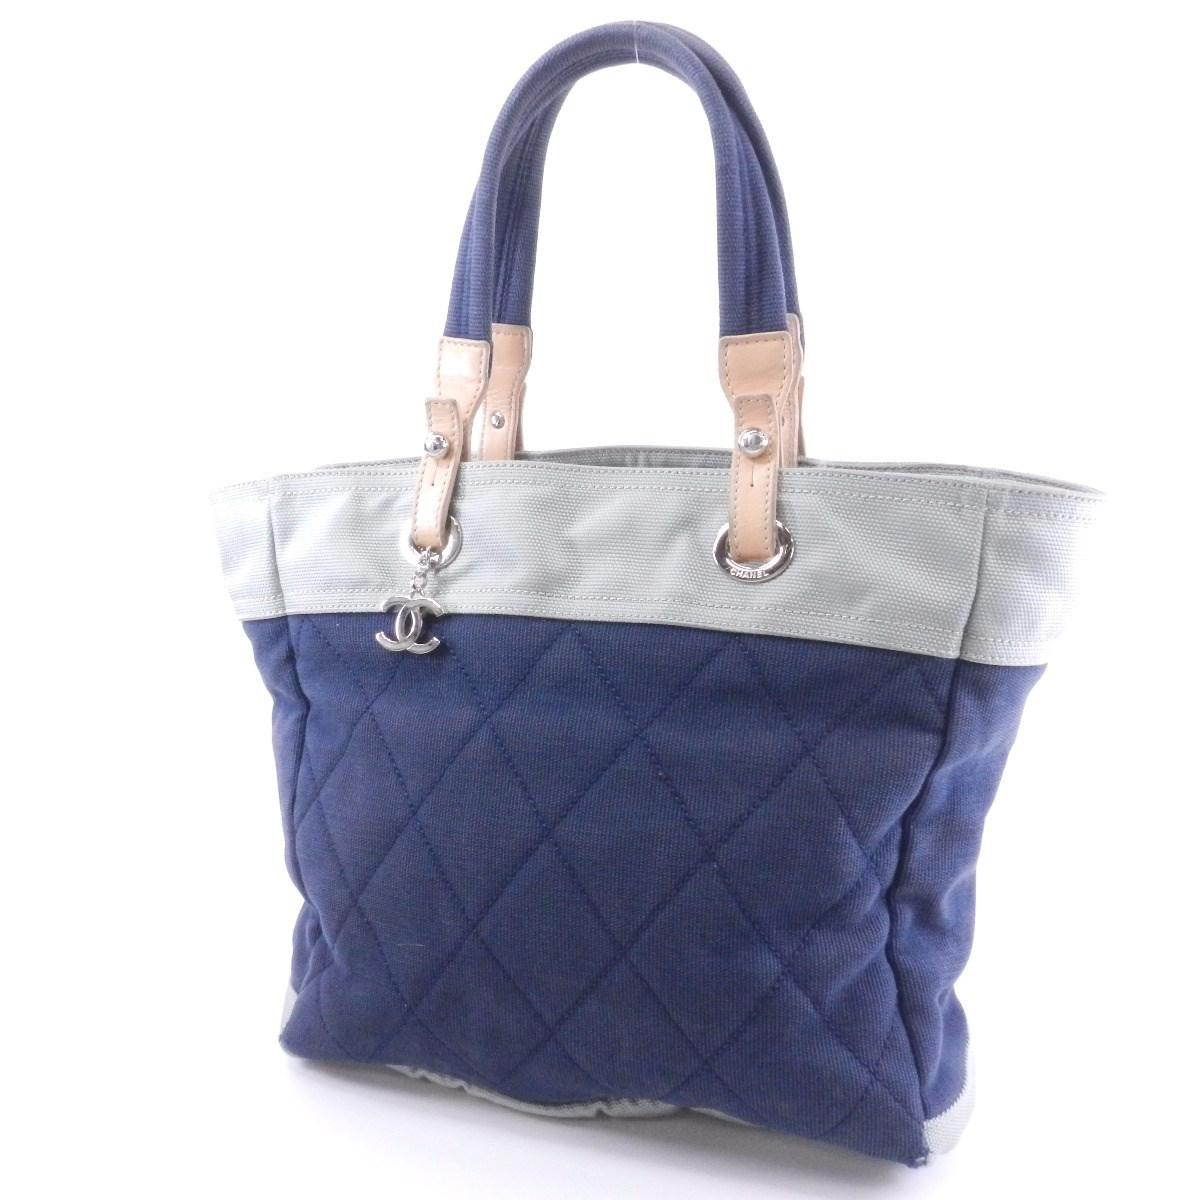 cd6e64f6a30f Chanel Canvas Tote Bag Paris Biarritz Tote in Blue - Lyst